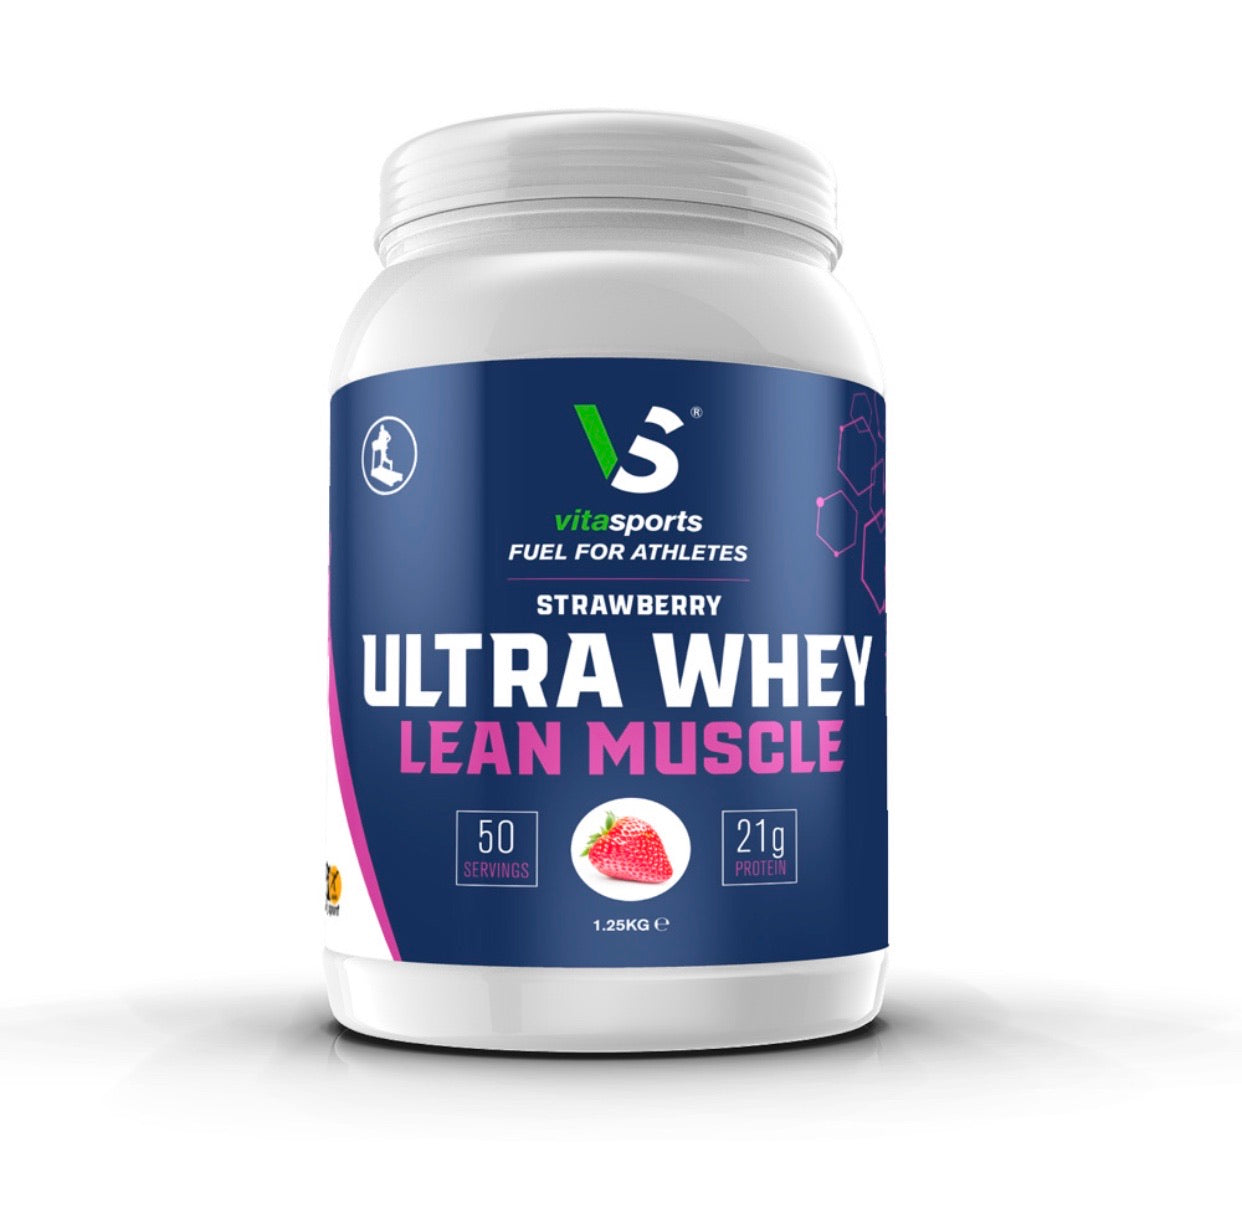 Vitasports Lean Muscle Whey Protein